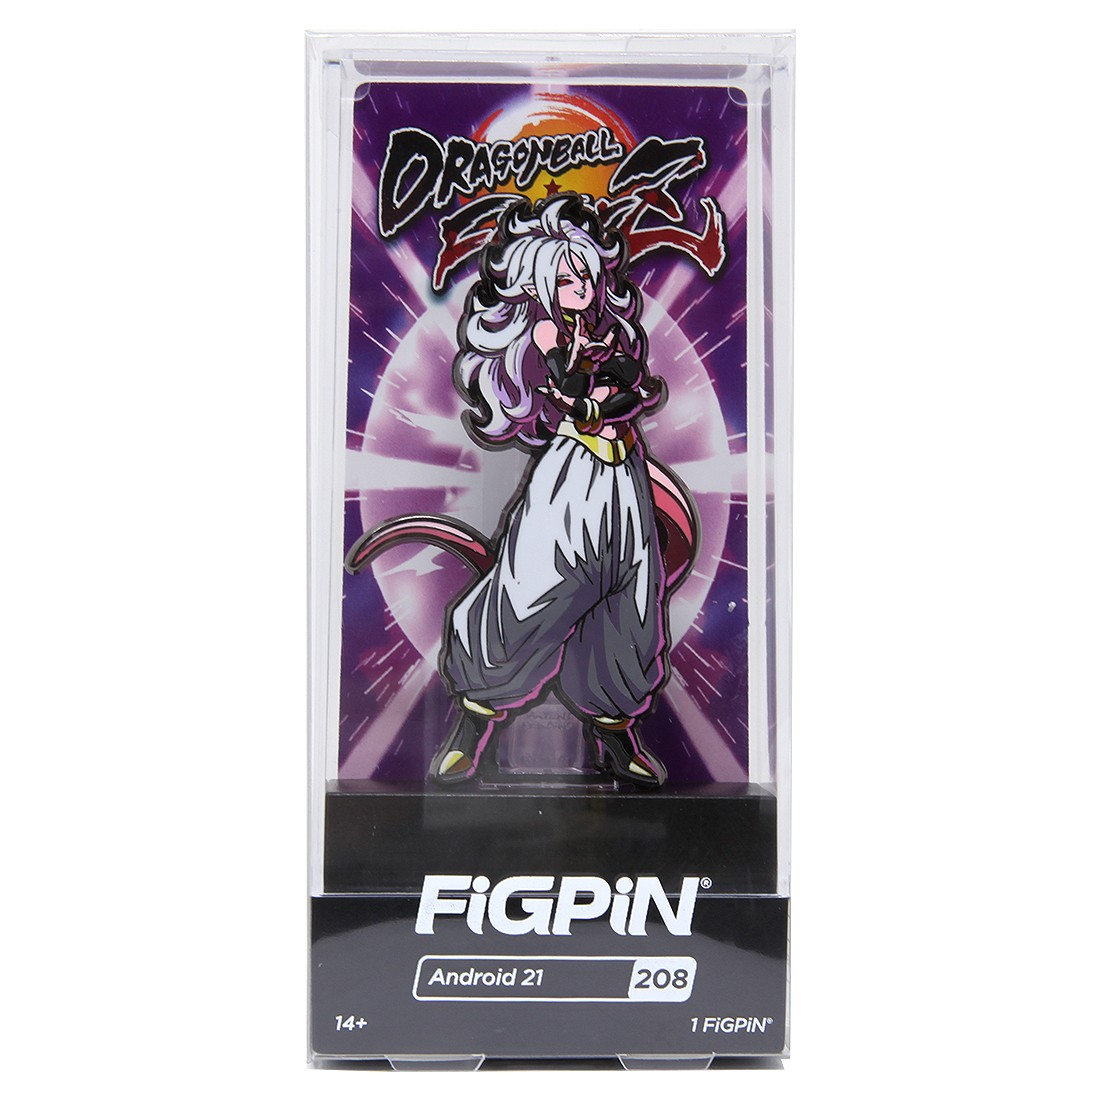 FiGPiN Dragon Ball FighterZ Android 21 #208 (white)